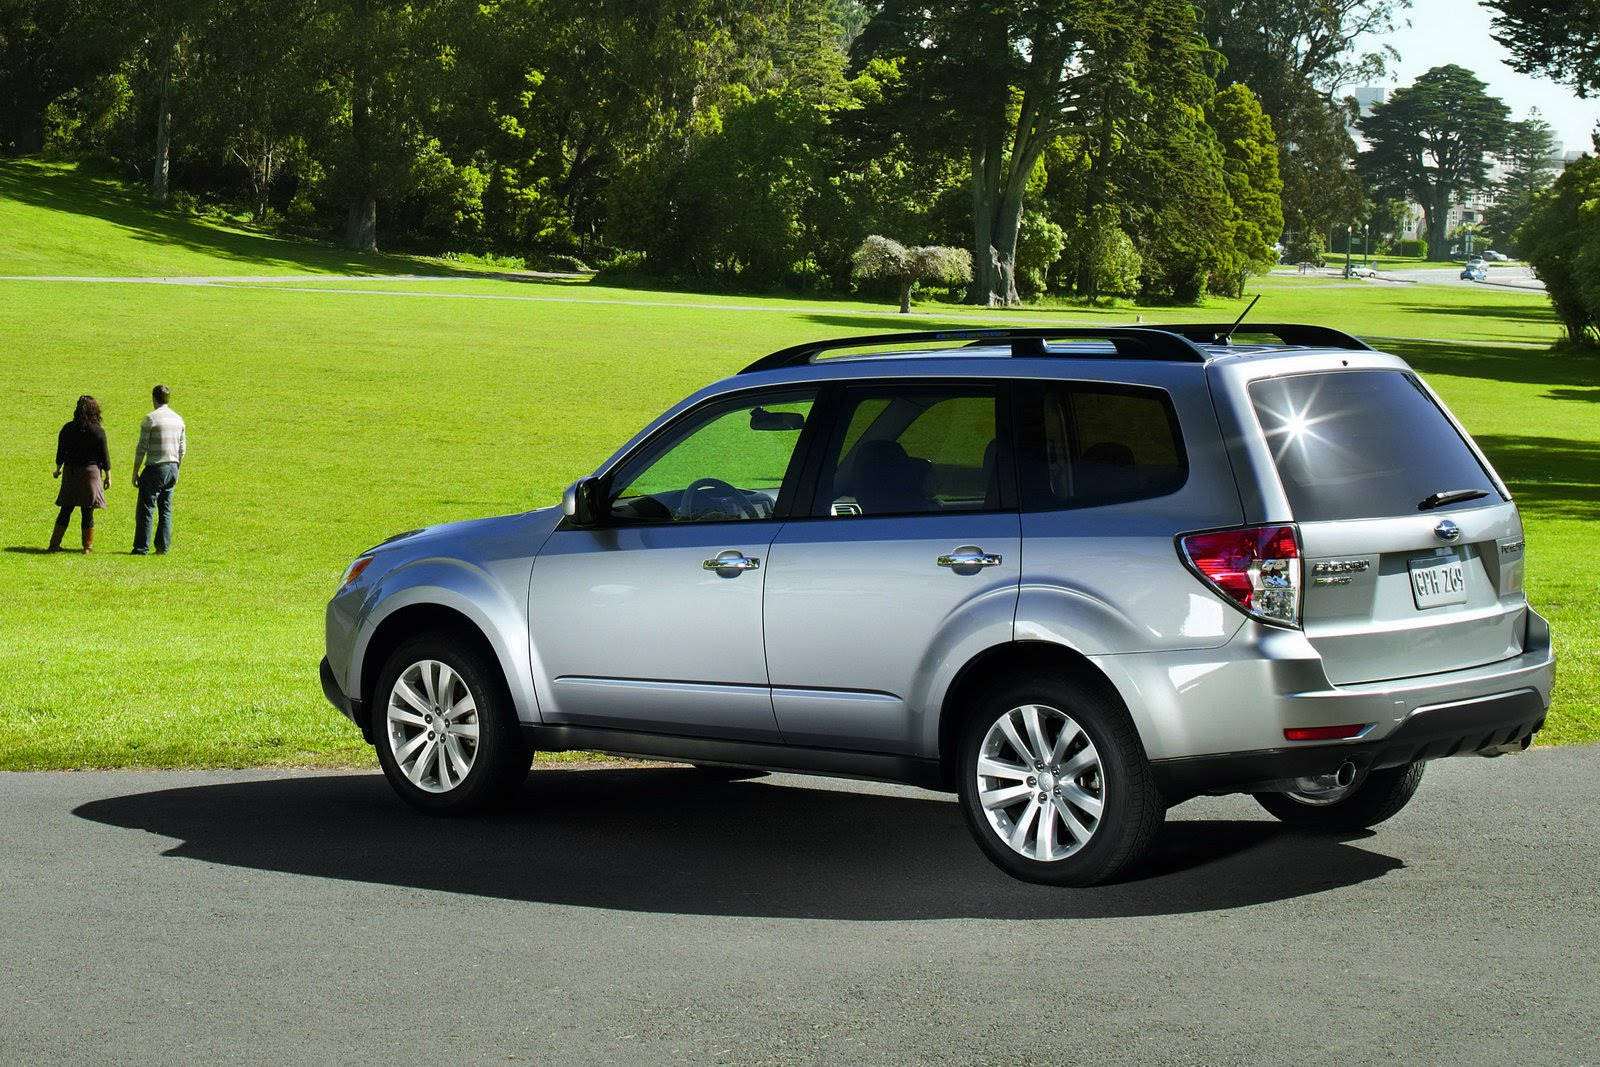 Subaru Forester 2 5xt Limited 2018 Subaru Outback Specs New Car Release Date And 2007 Subaru